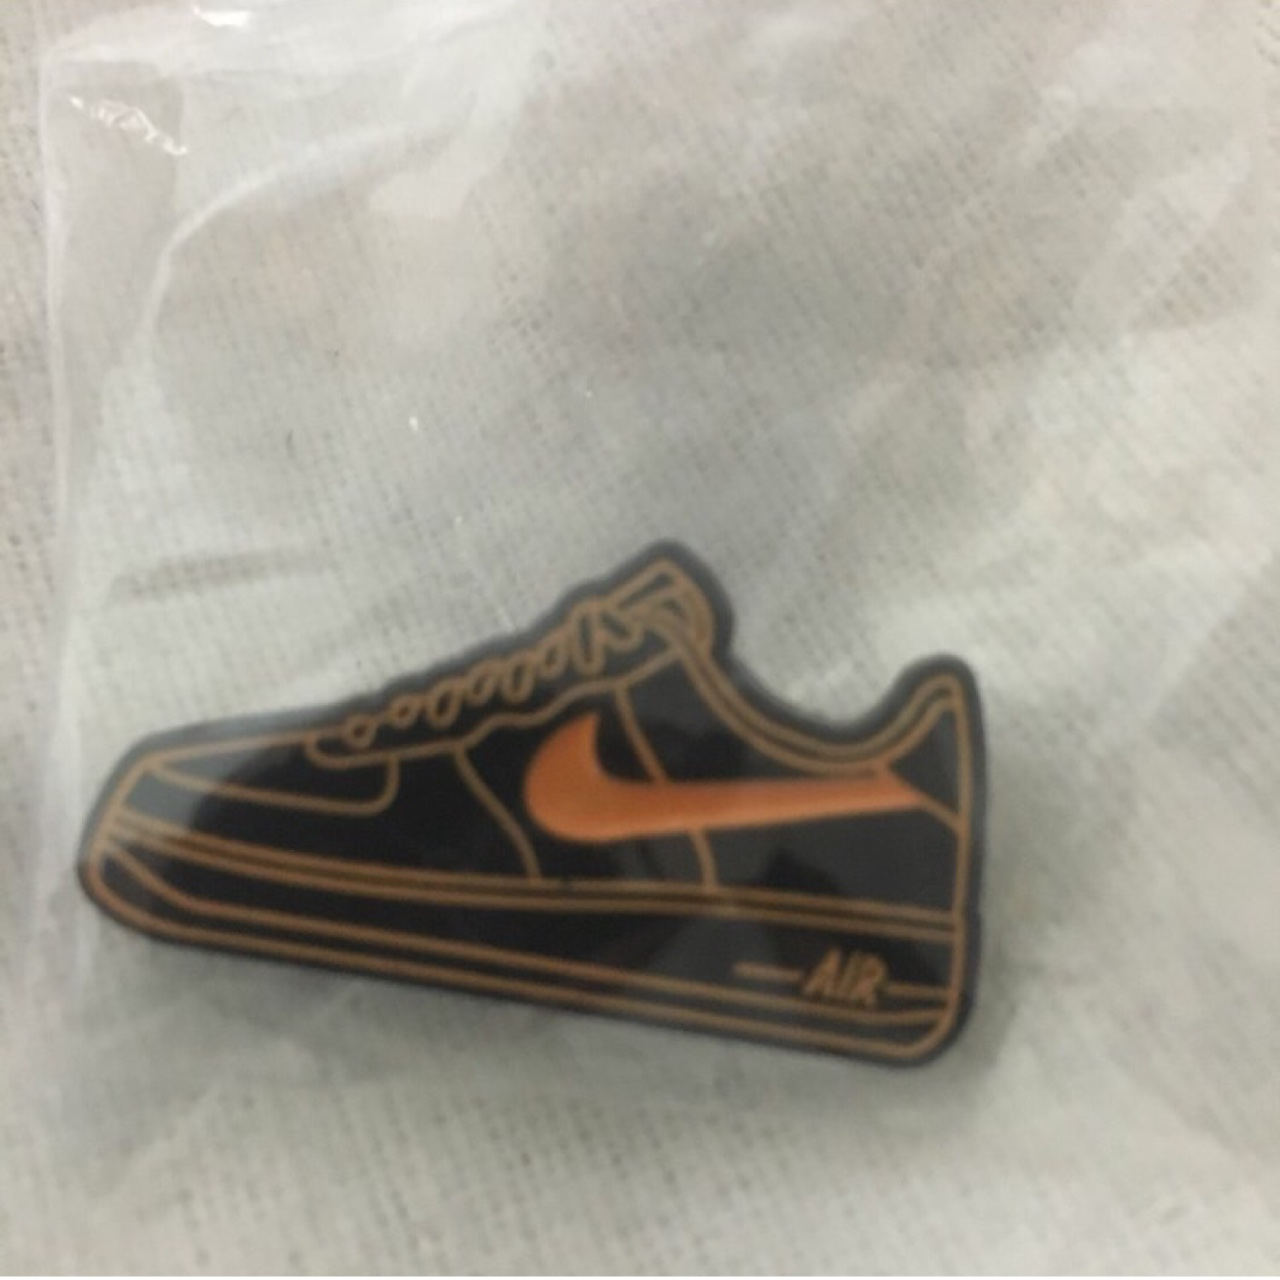 Vlone X Nike Lab Exclusive Pin, Sold out everywhere     - Depop